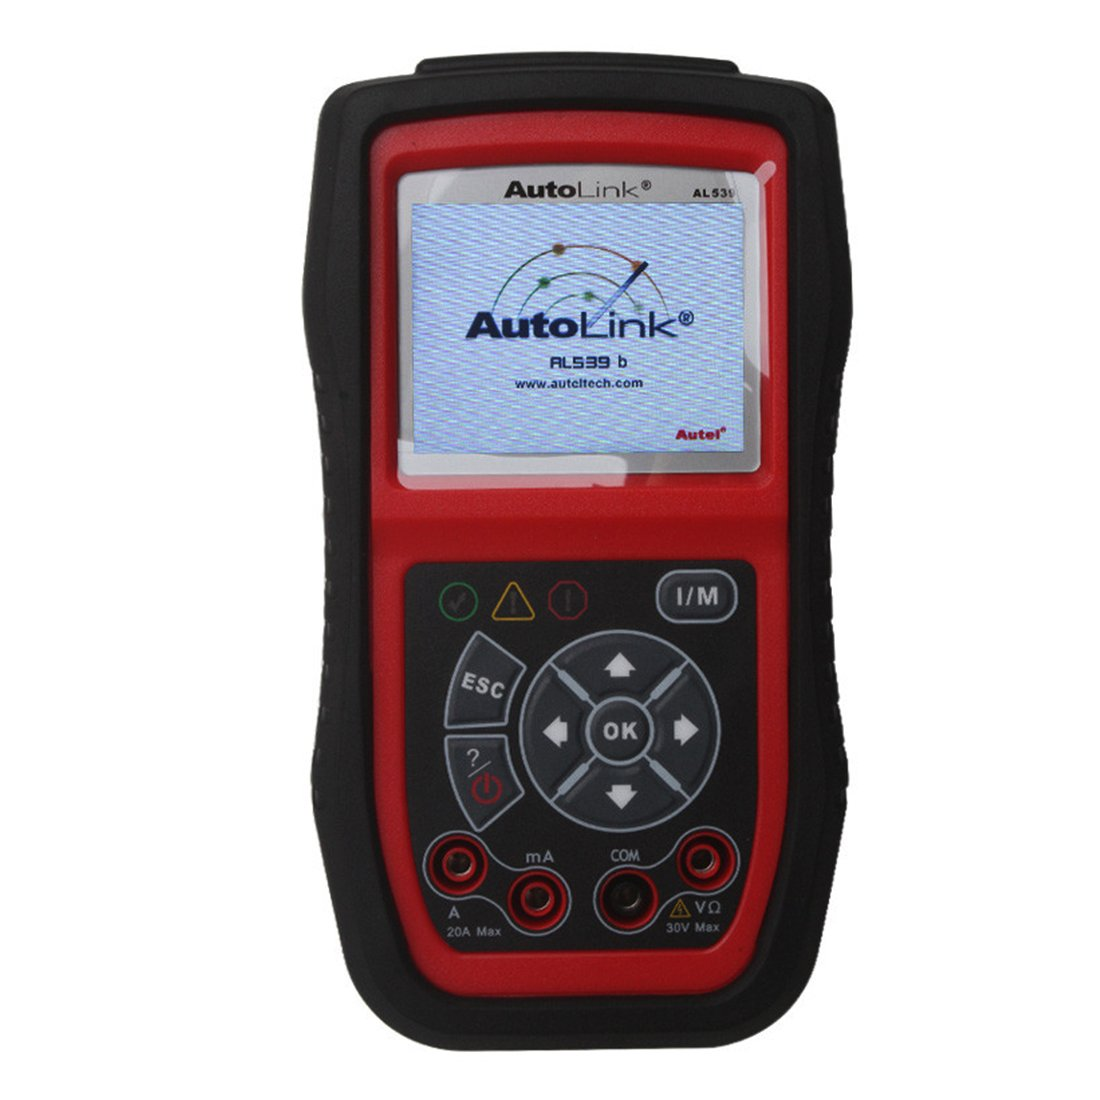 Autel Autolink Al539 OBD2 Professional Car Diagnostic Tool Code Reader & Electrical Test Scanner